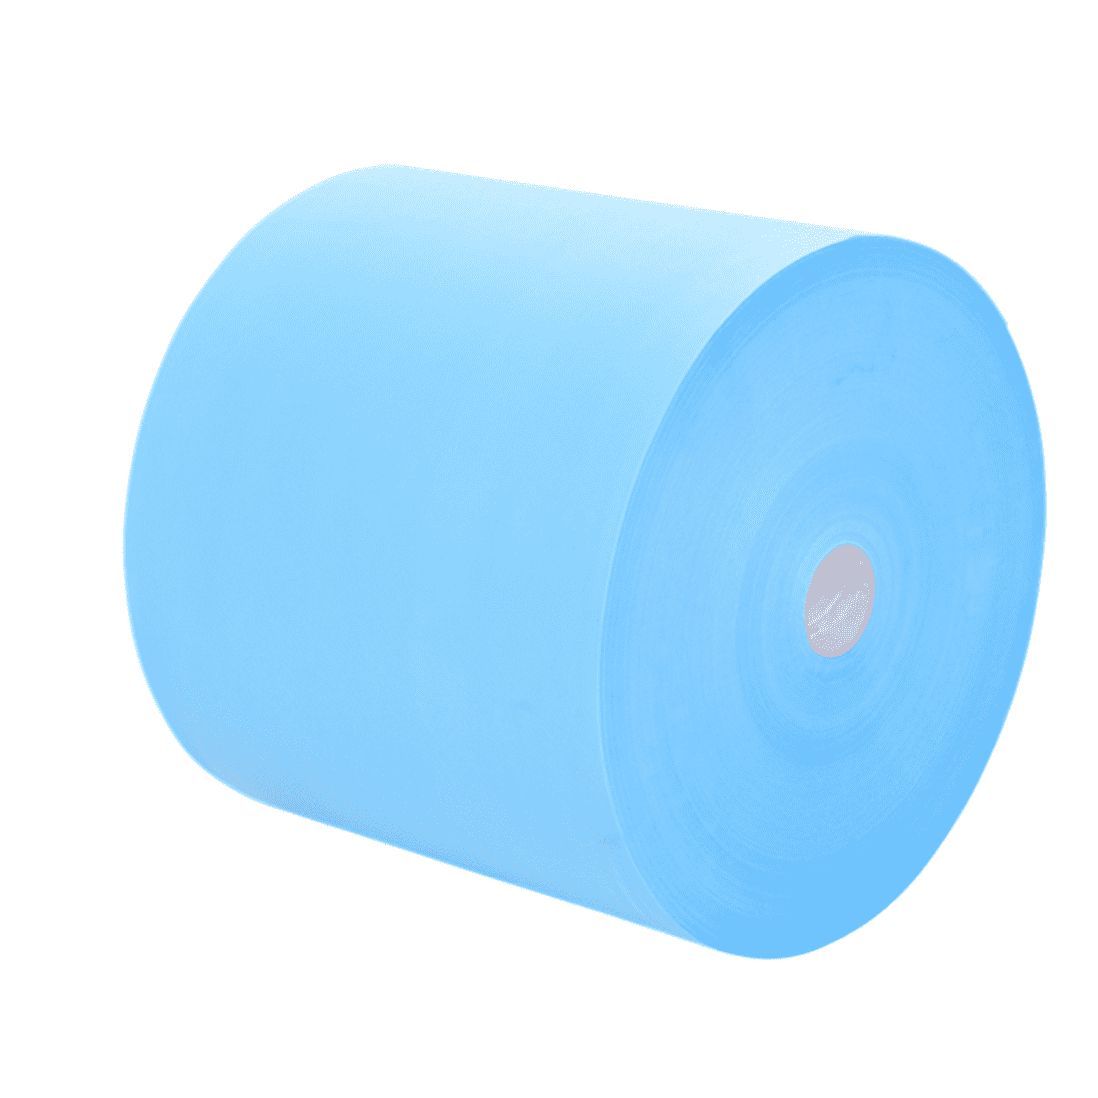 Breathable Film Coating PP Spunbond Non-Woven Fabric Rolls for Protective Isolation Gowns Featured Image